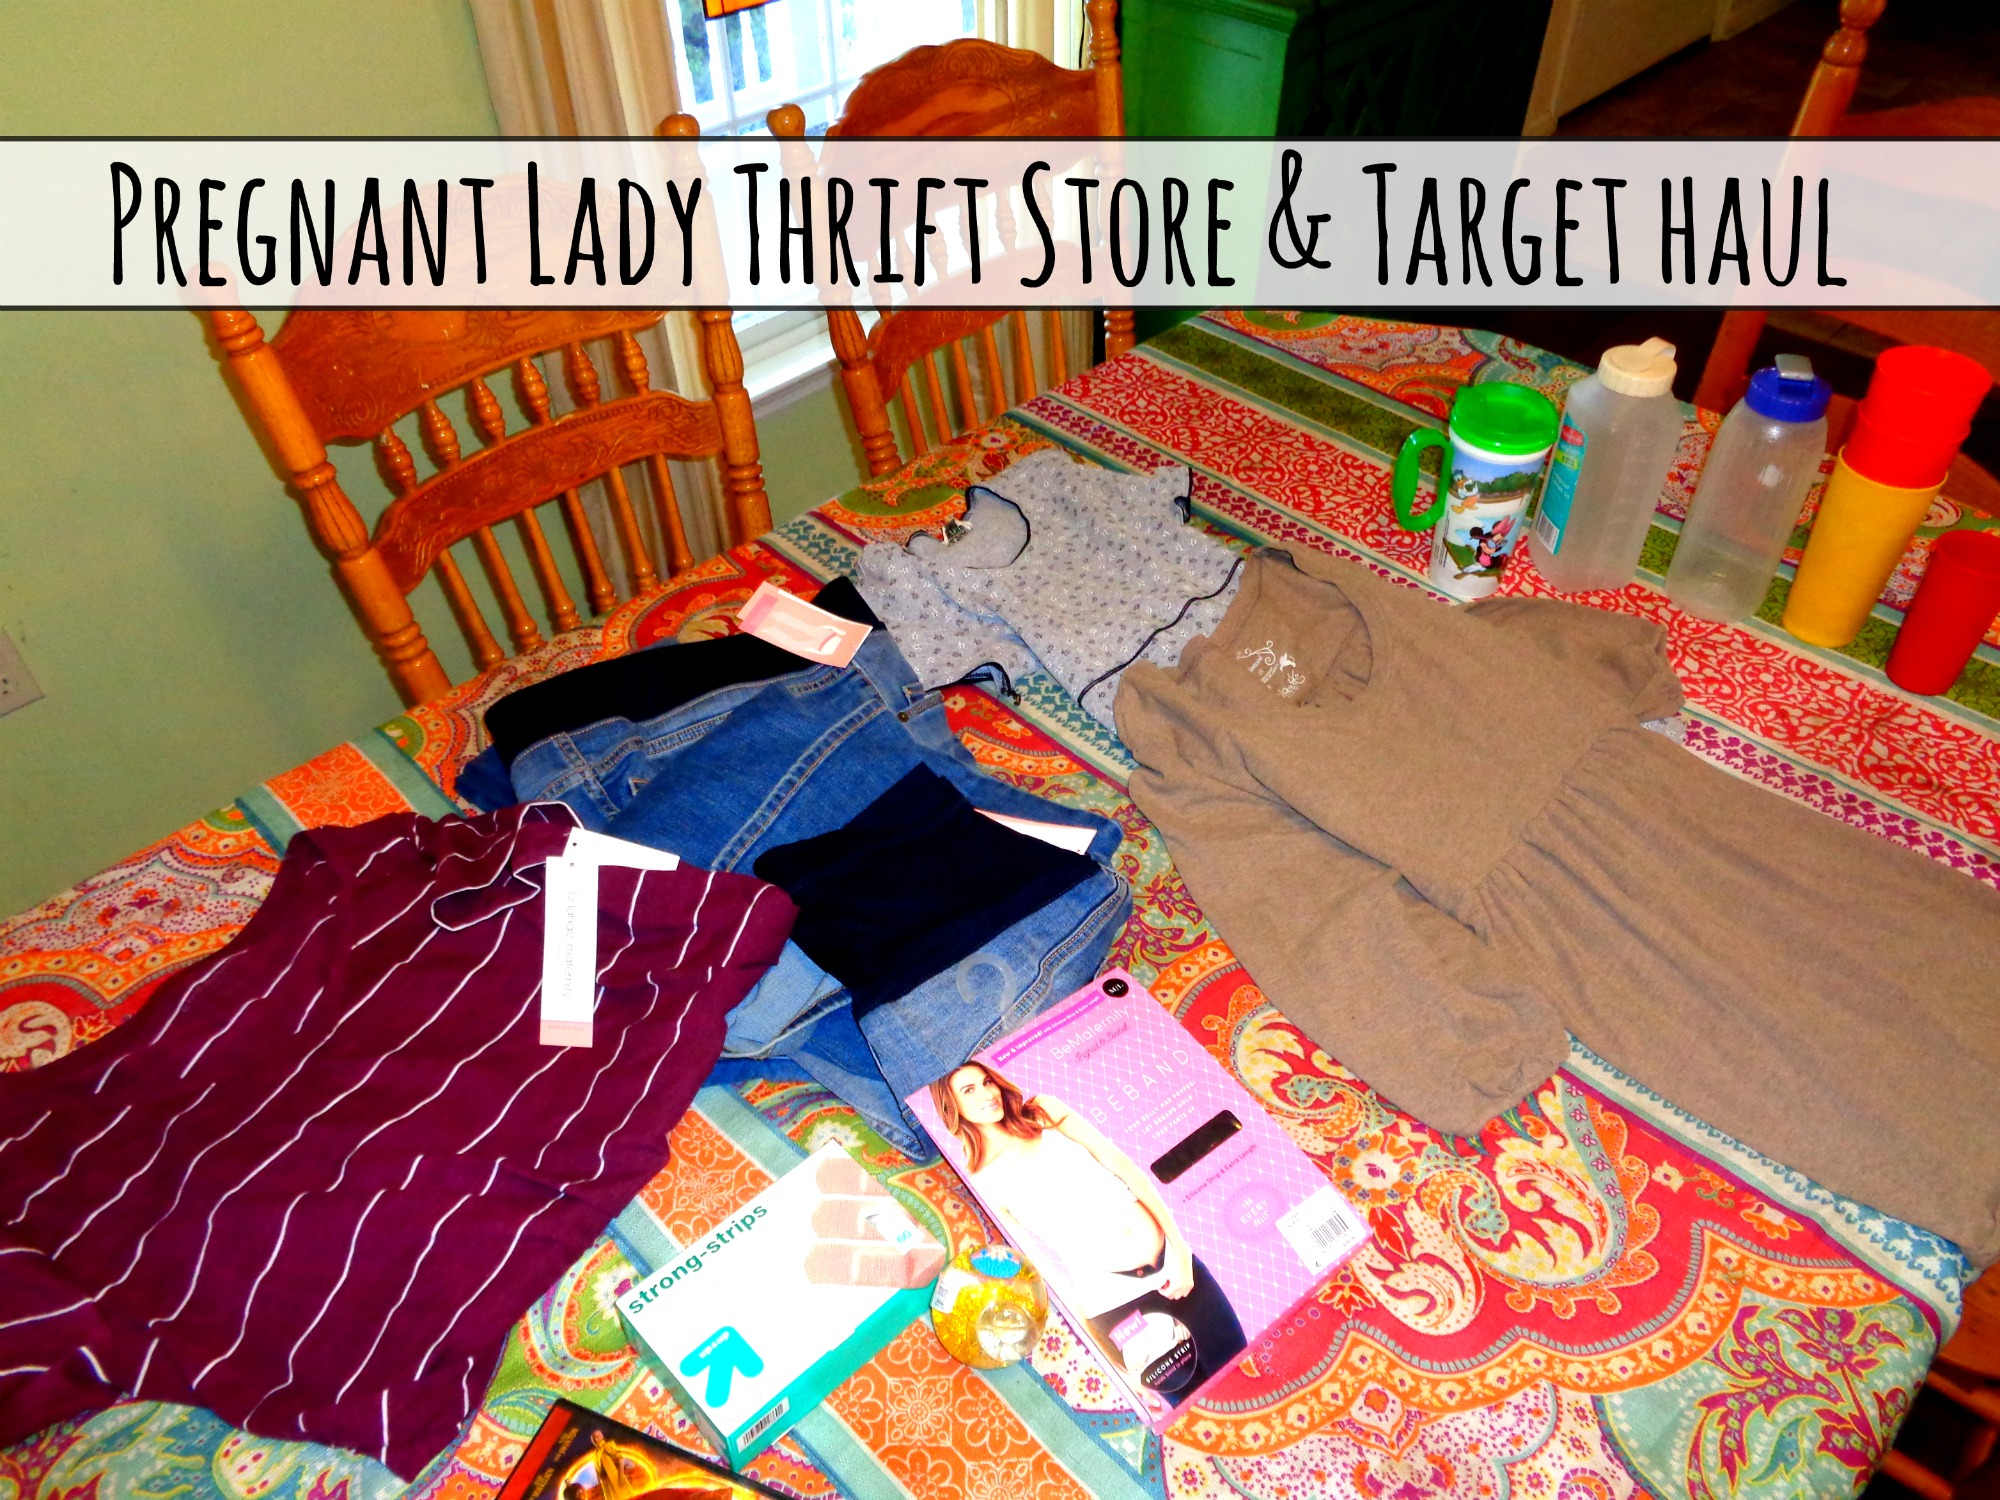 Pregnant Lady Thrift Store & Target Haul